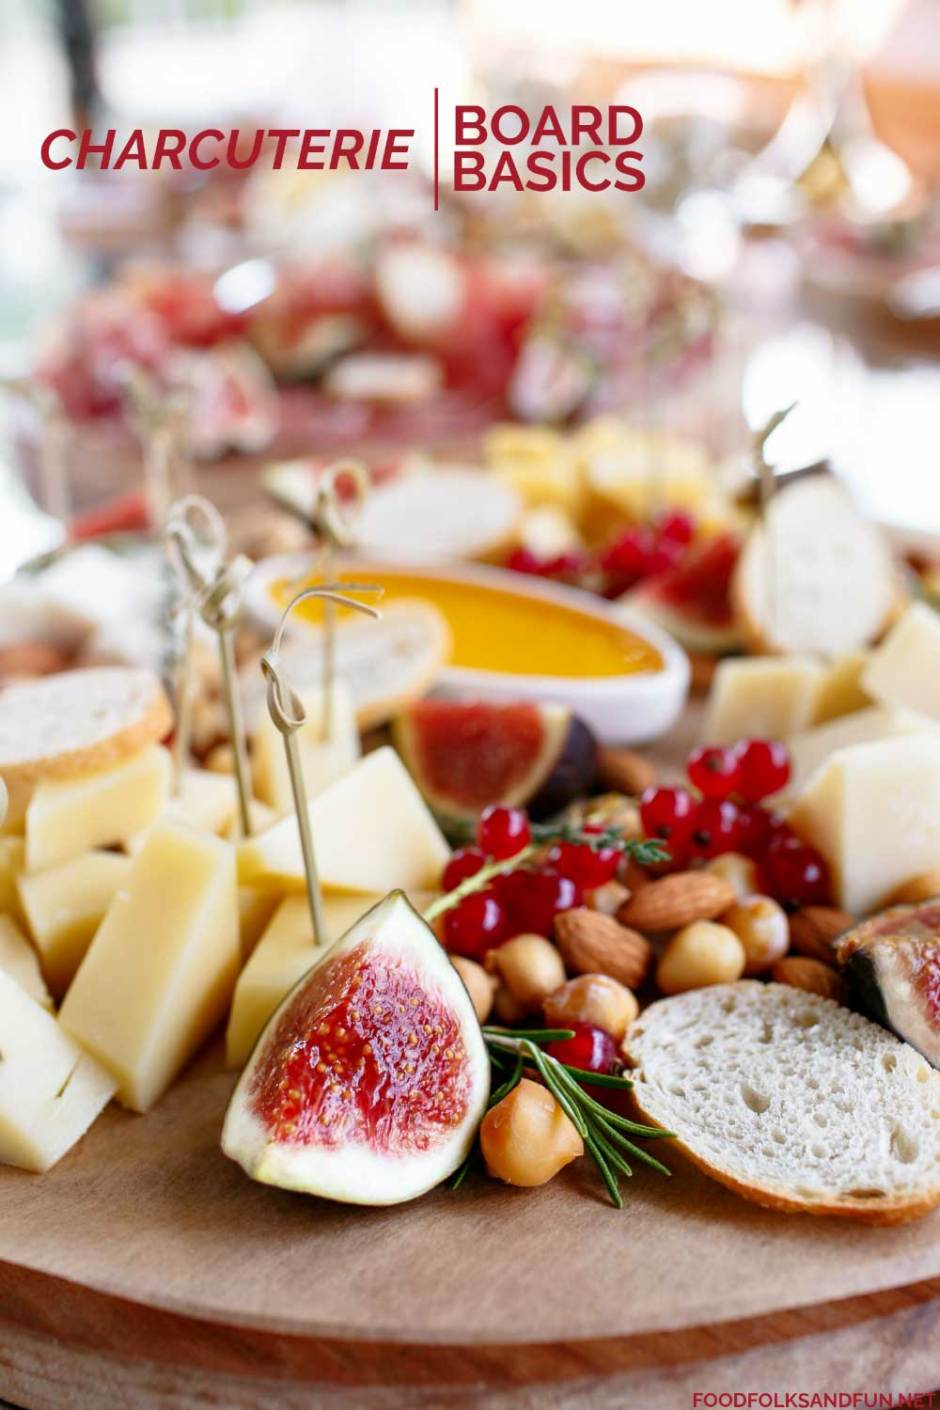 A lovely charcuterie board for the holidays.